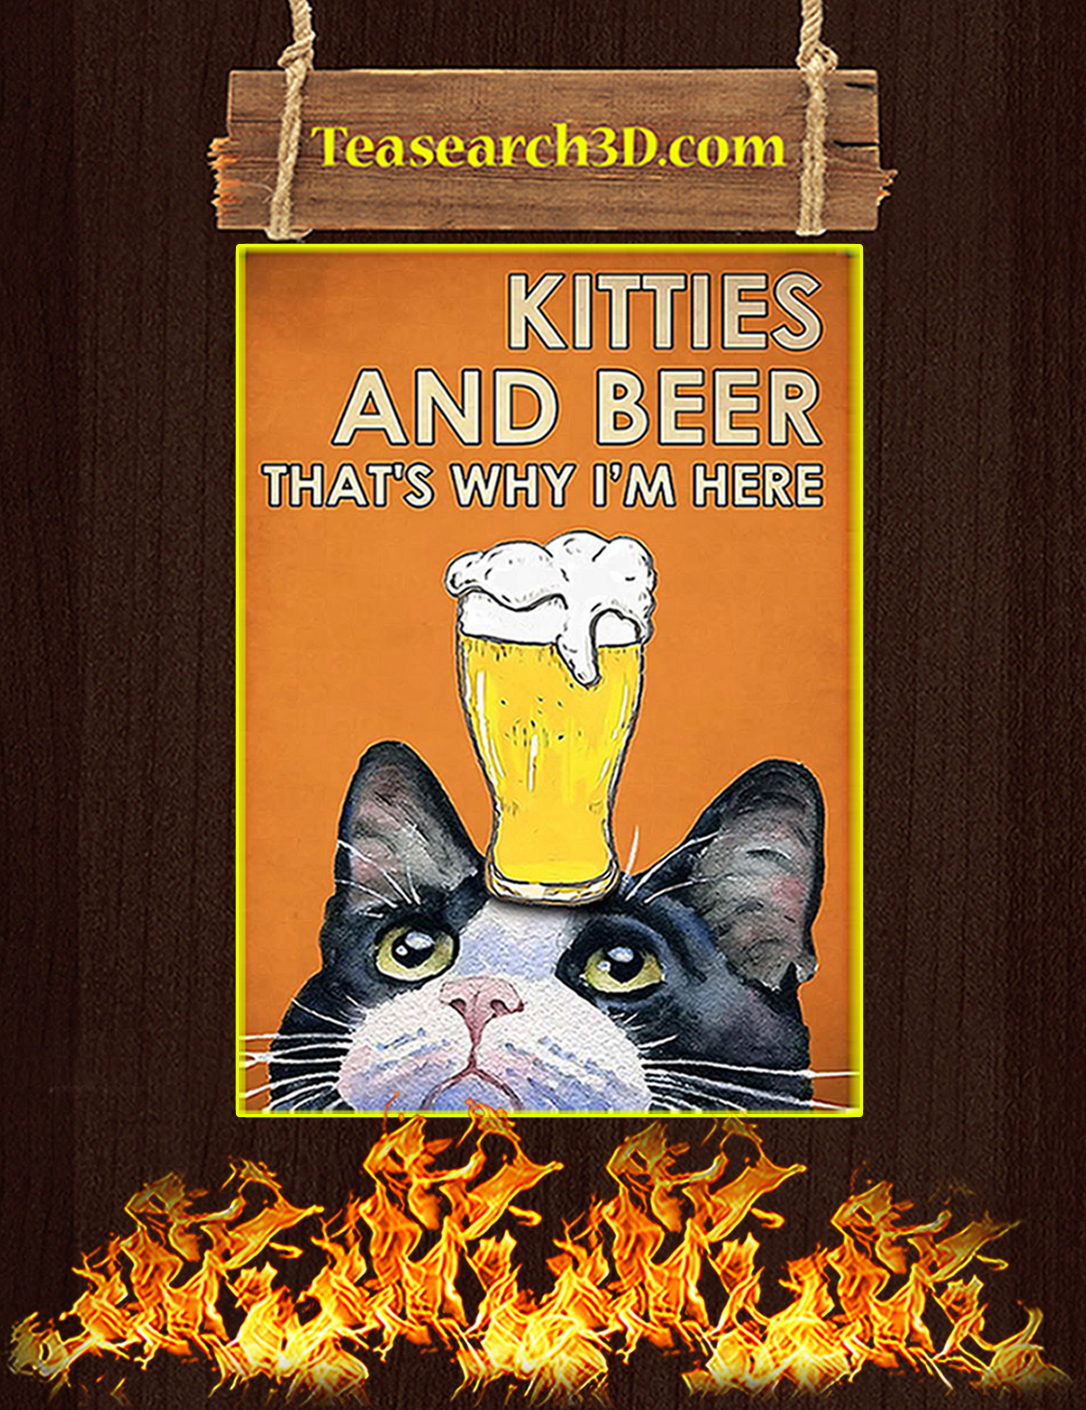 Kitties and beer that's why I'm here poster A2